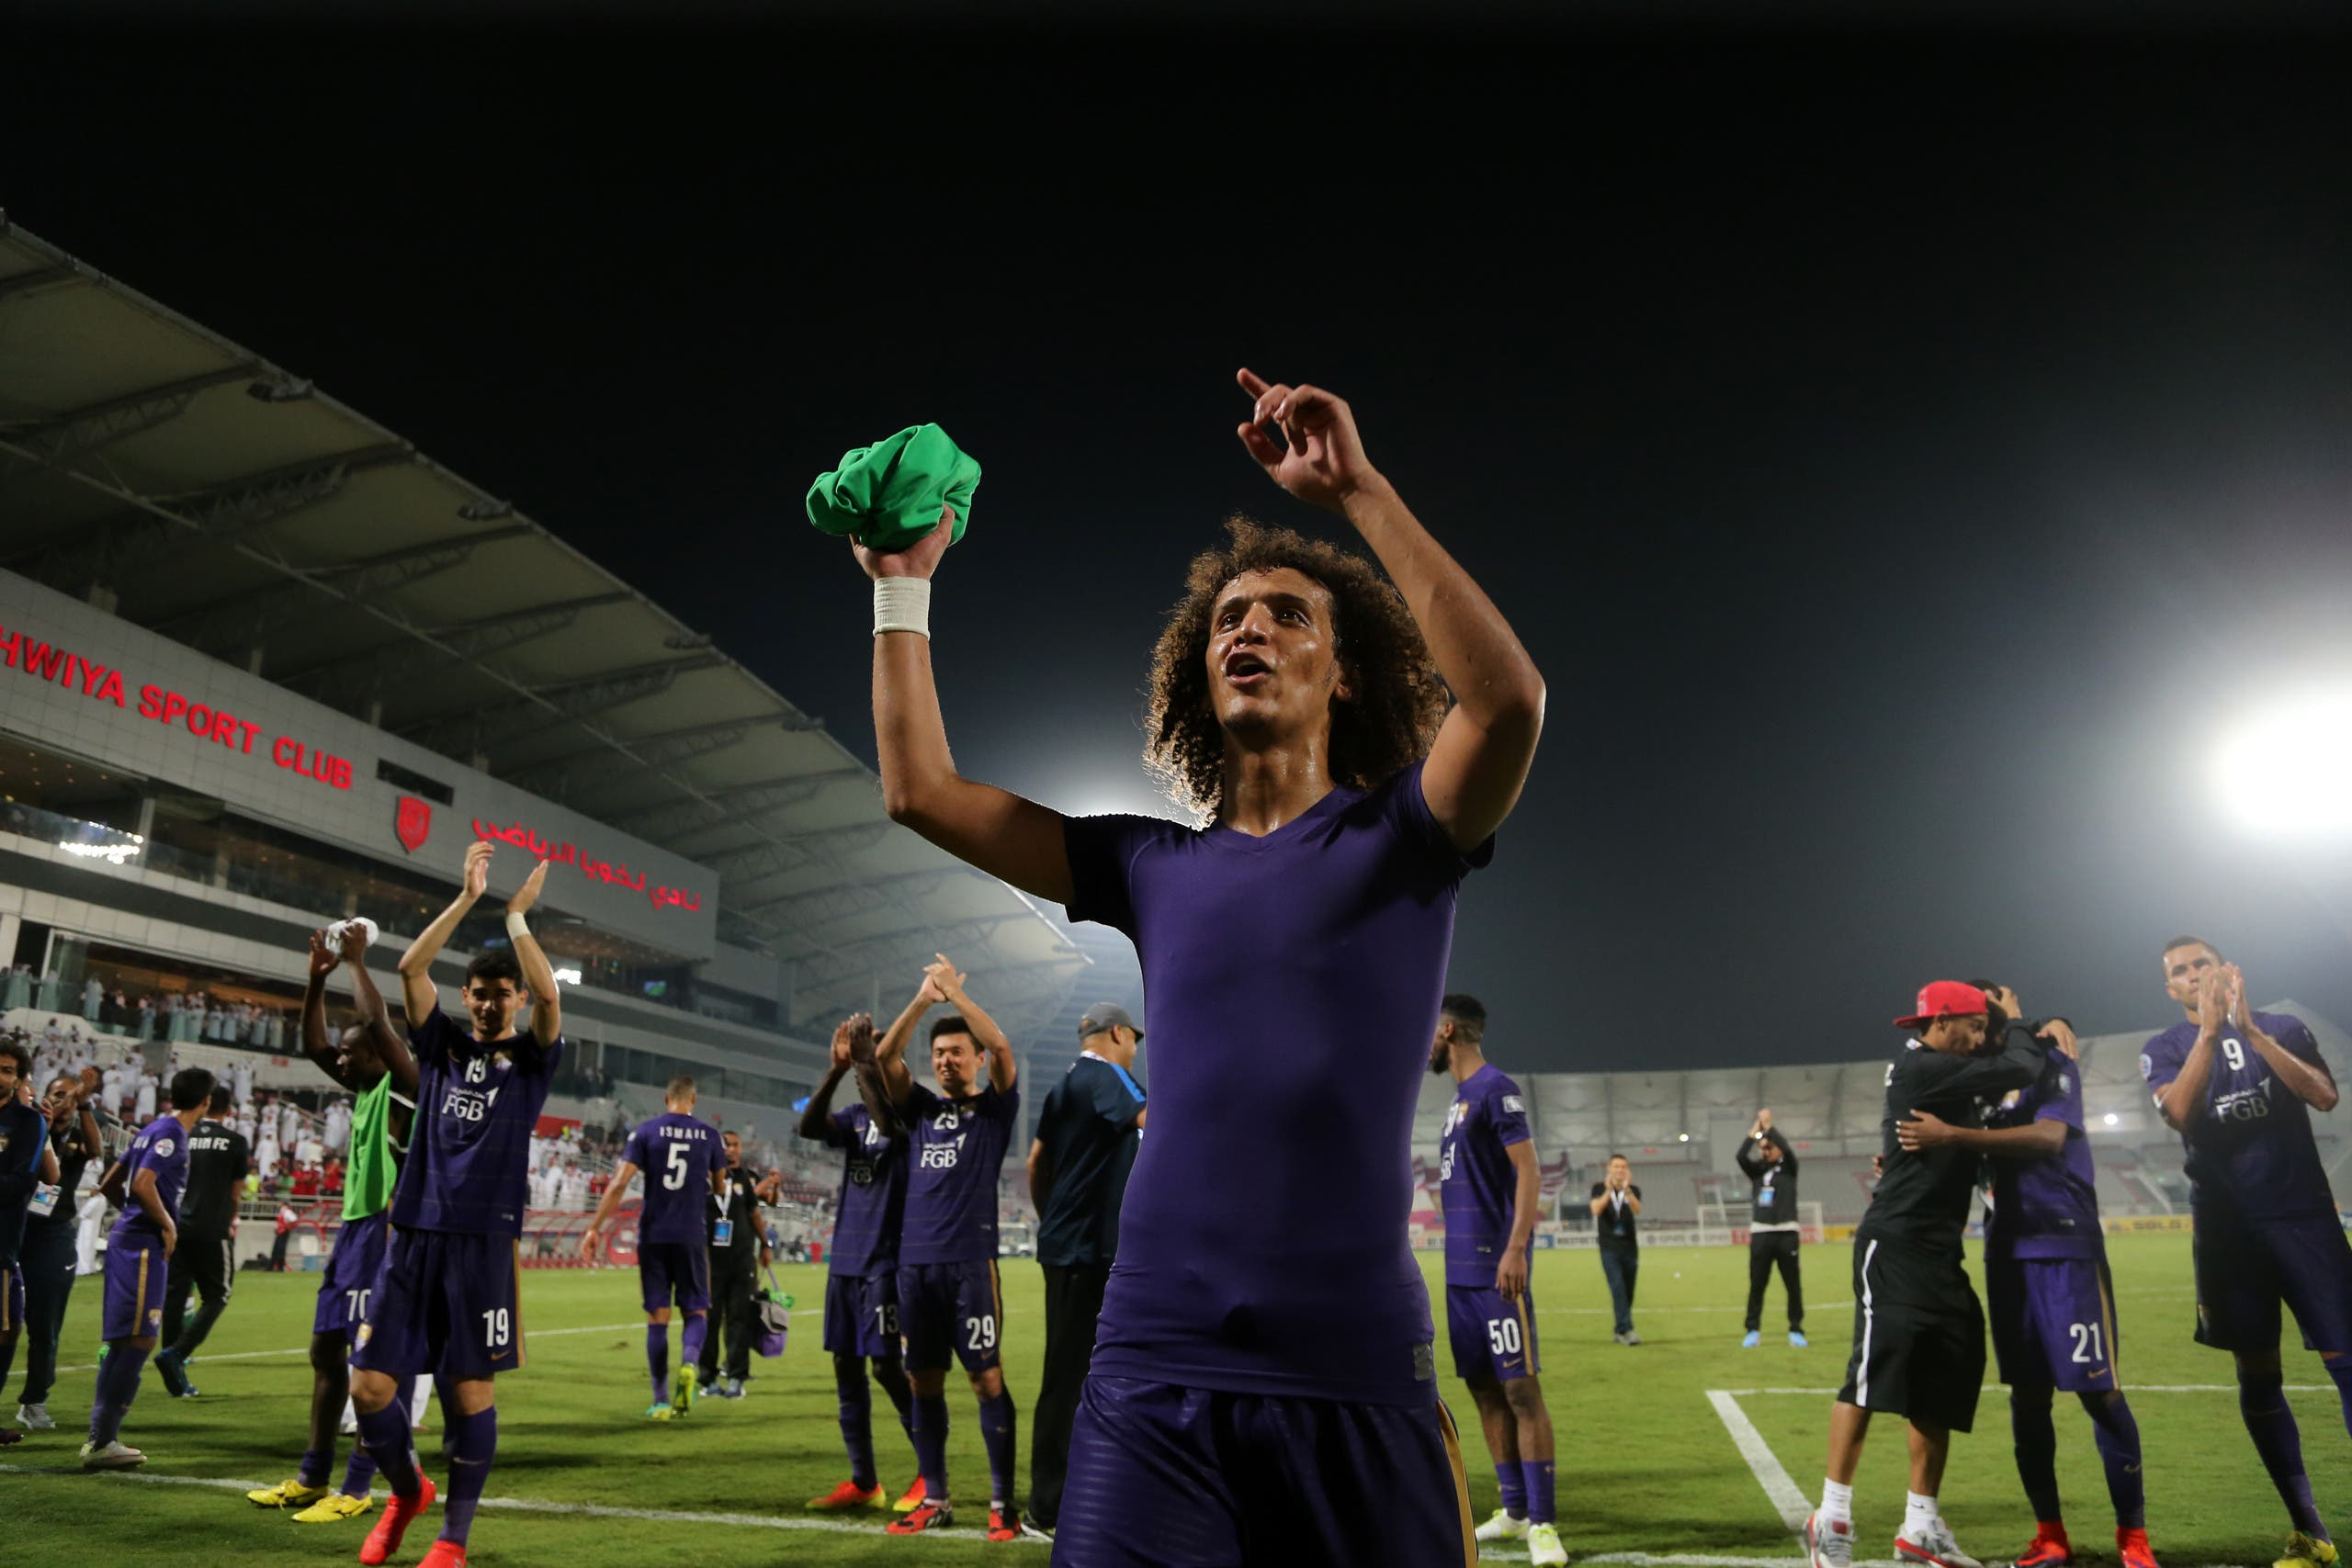 Al-Ain's Omar Abdulrahman (C) and teammate celebrate at the end of the Asian Champions League football return match between Qatar's El-Jaish and UAE's Al-Ain on October 18, 2016 at the Abdullah Bin Khalifa Stadium in Doha.  KARIM JAAFAR / AFP